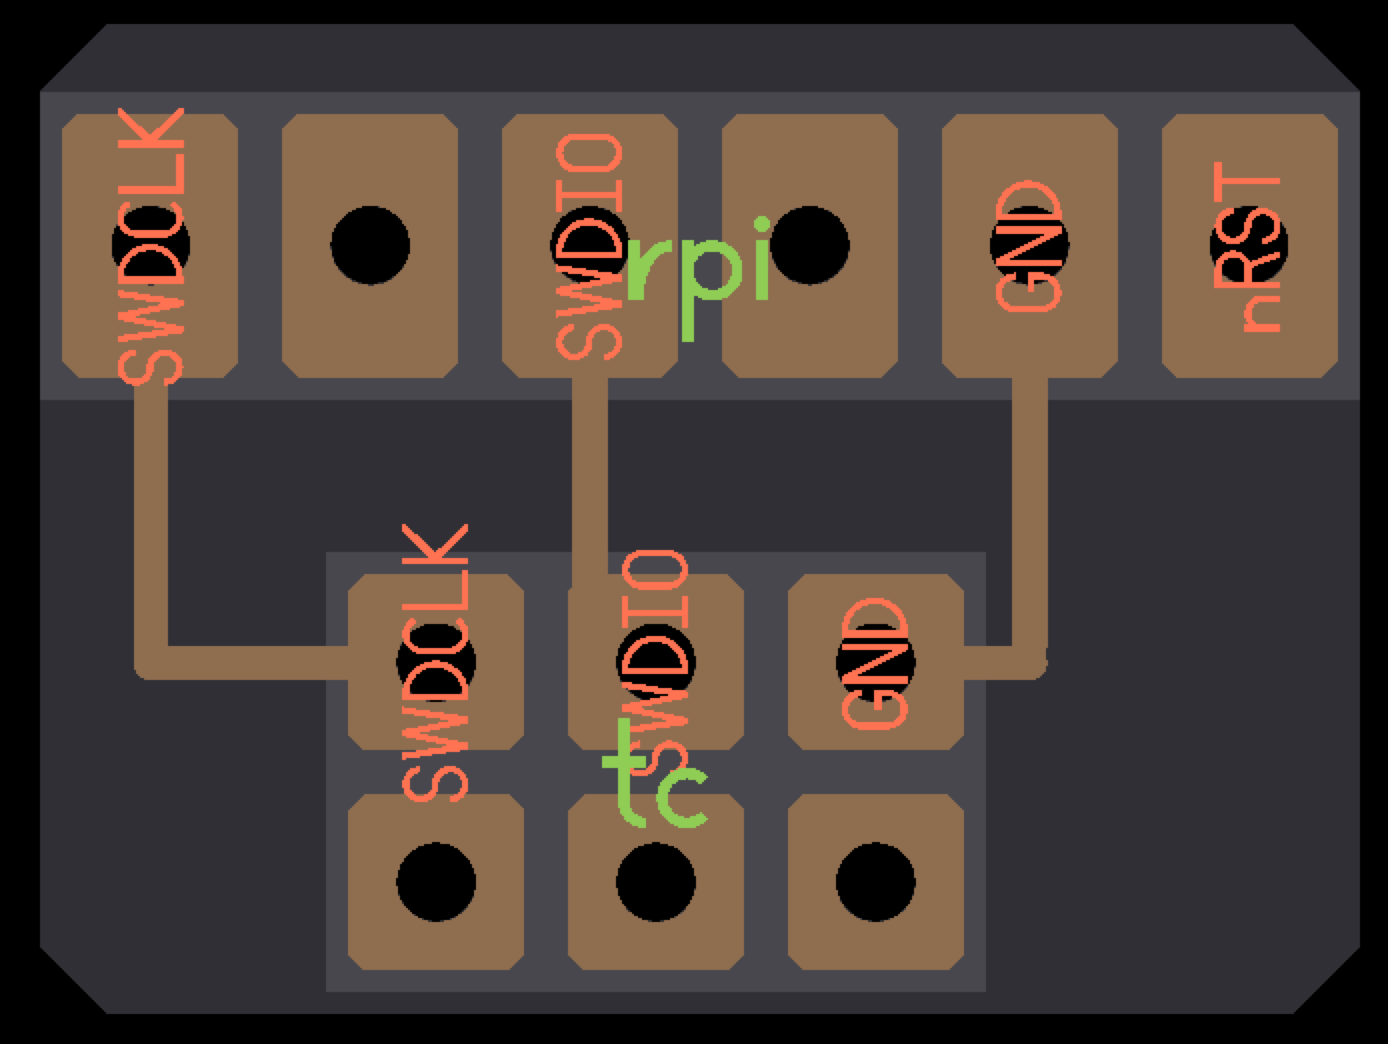 openocd/rpi-swd-programming-adapter-layout.png